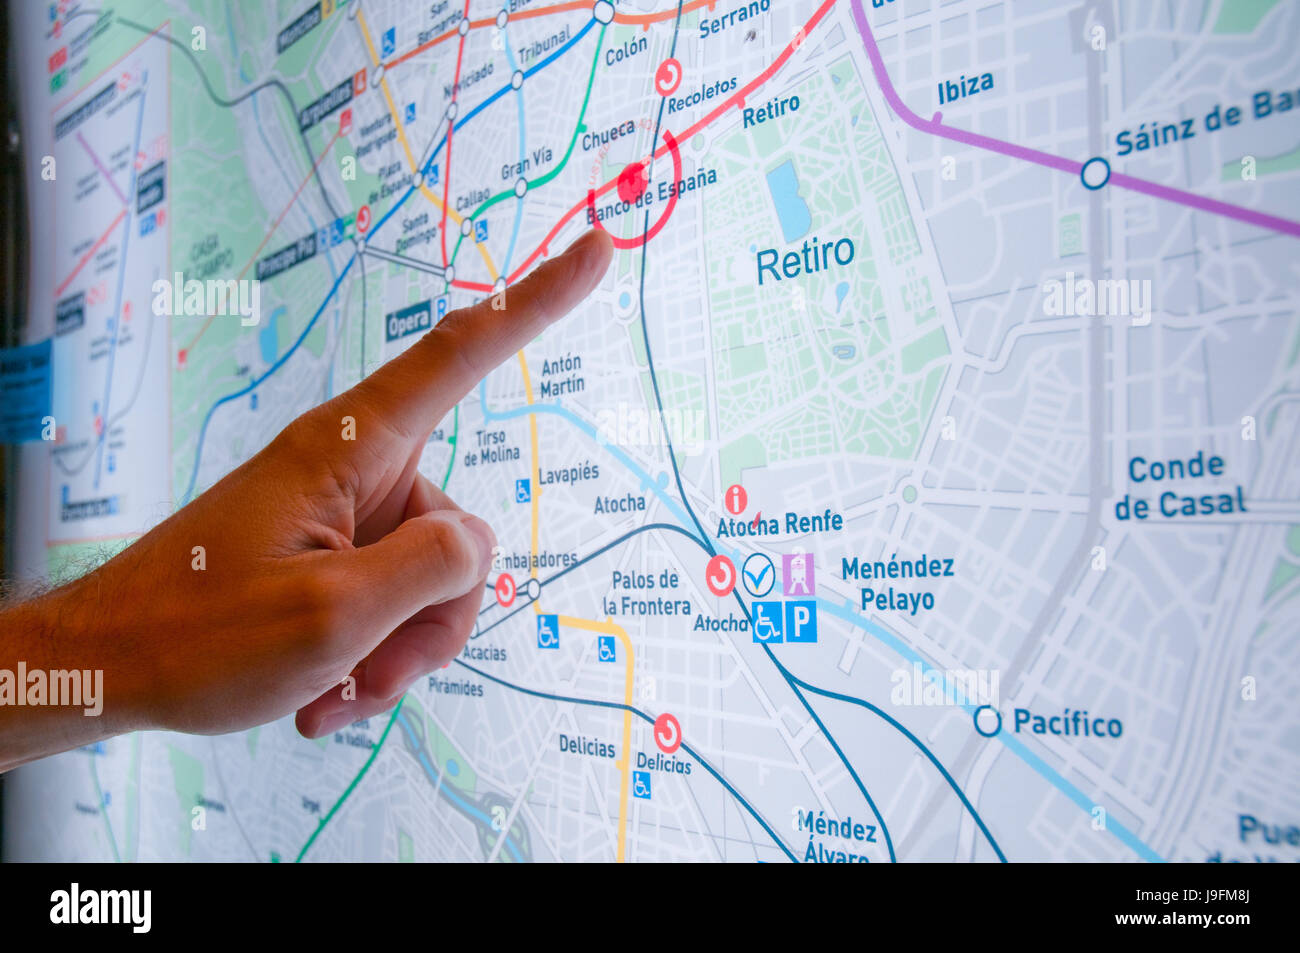 Man\'s hand pointing at a point on a Metro map. Madrid, Spain Stock ...